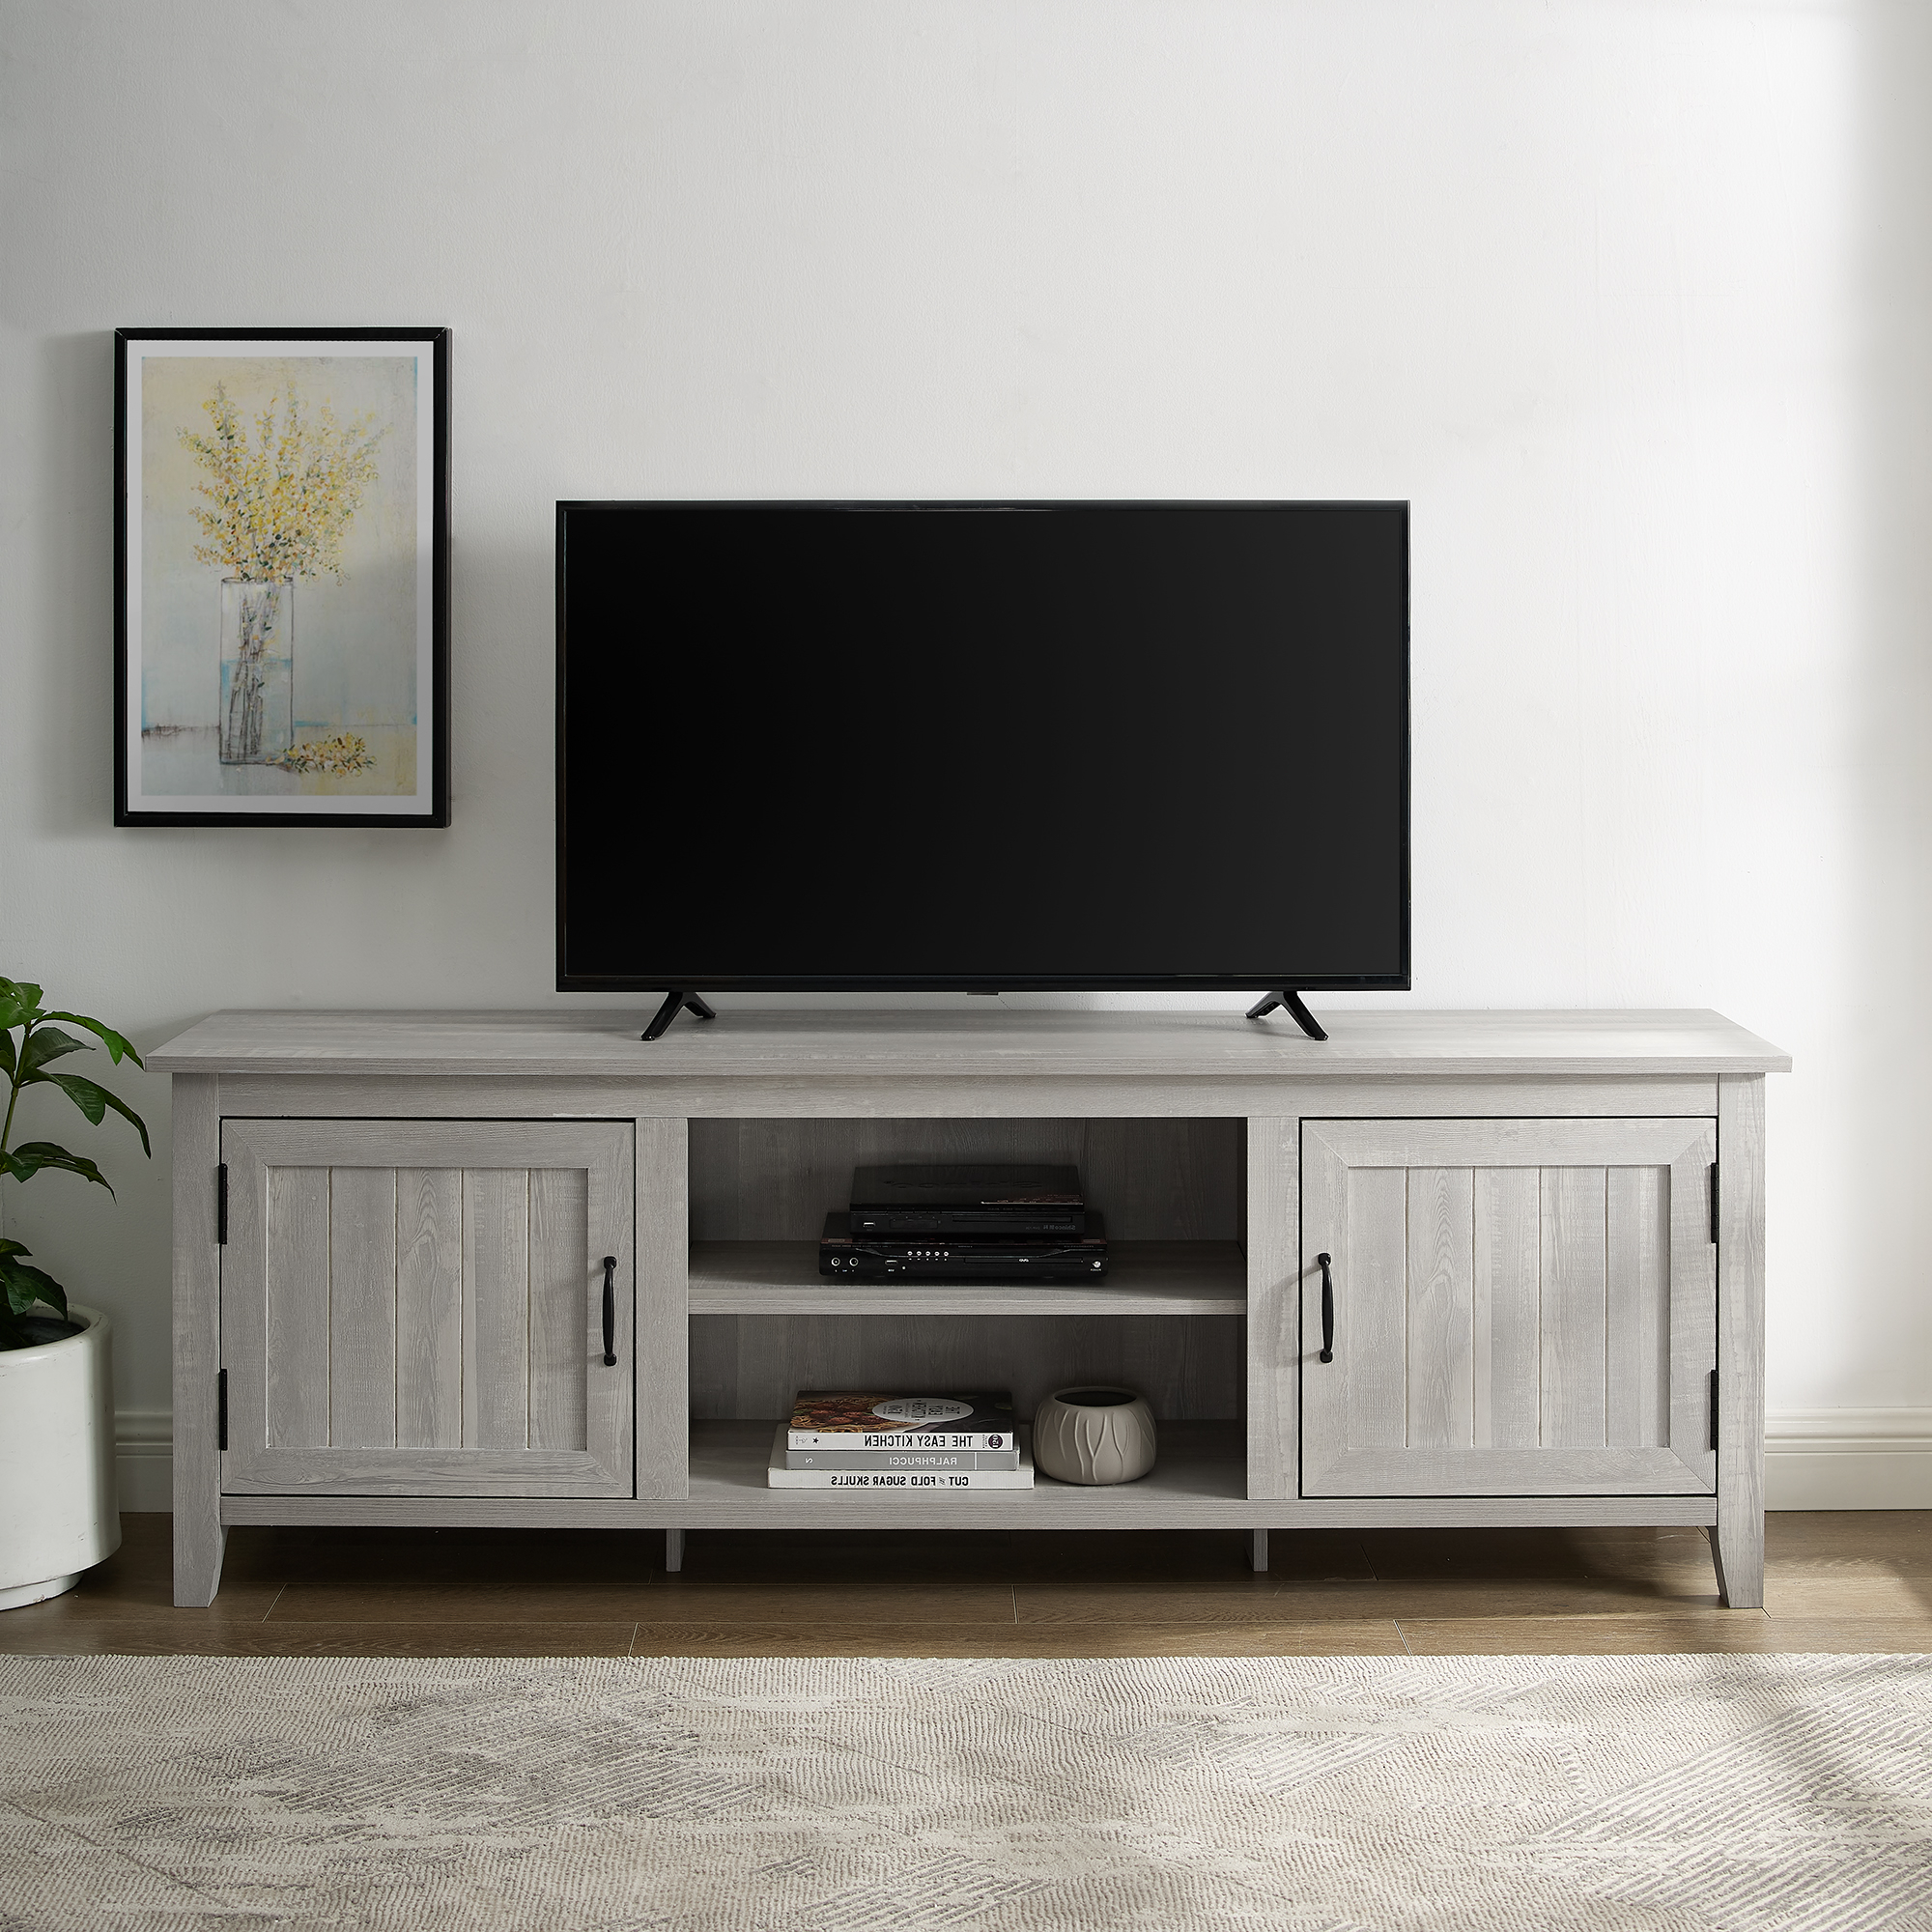 """Walker Edison Furniture Company 70"""" Modern Farmhouse Wood Within Modern Farmhouse Tv Stands (View 10 of 31)"""